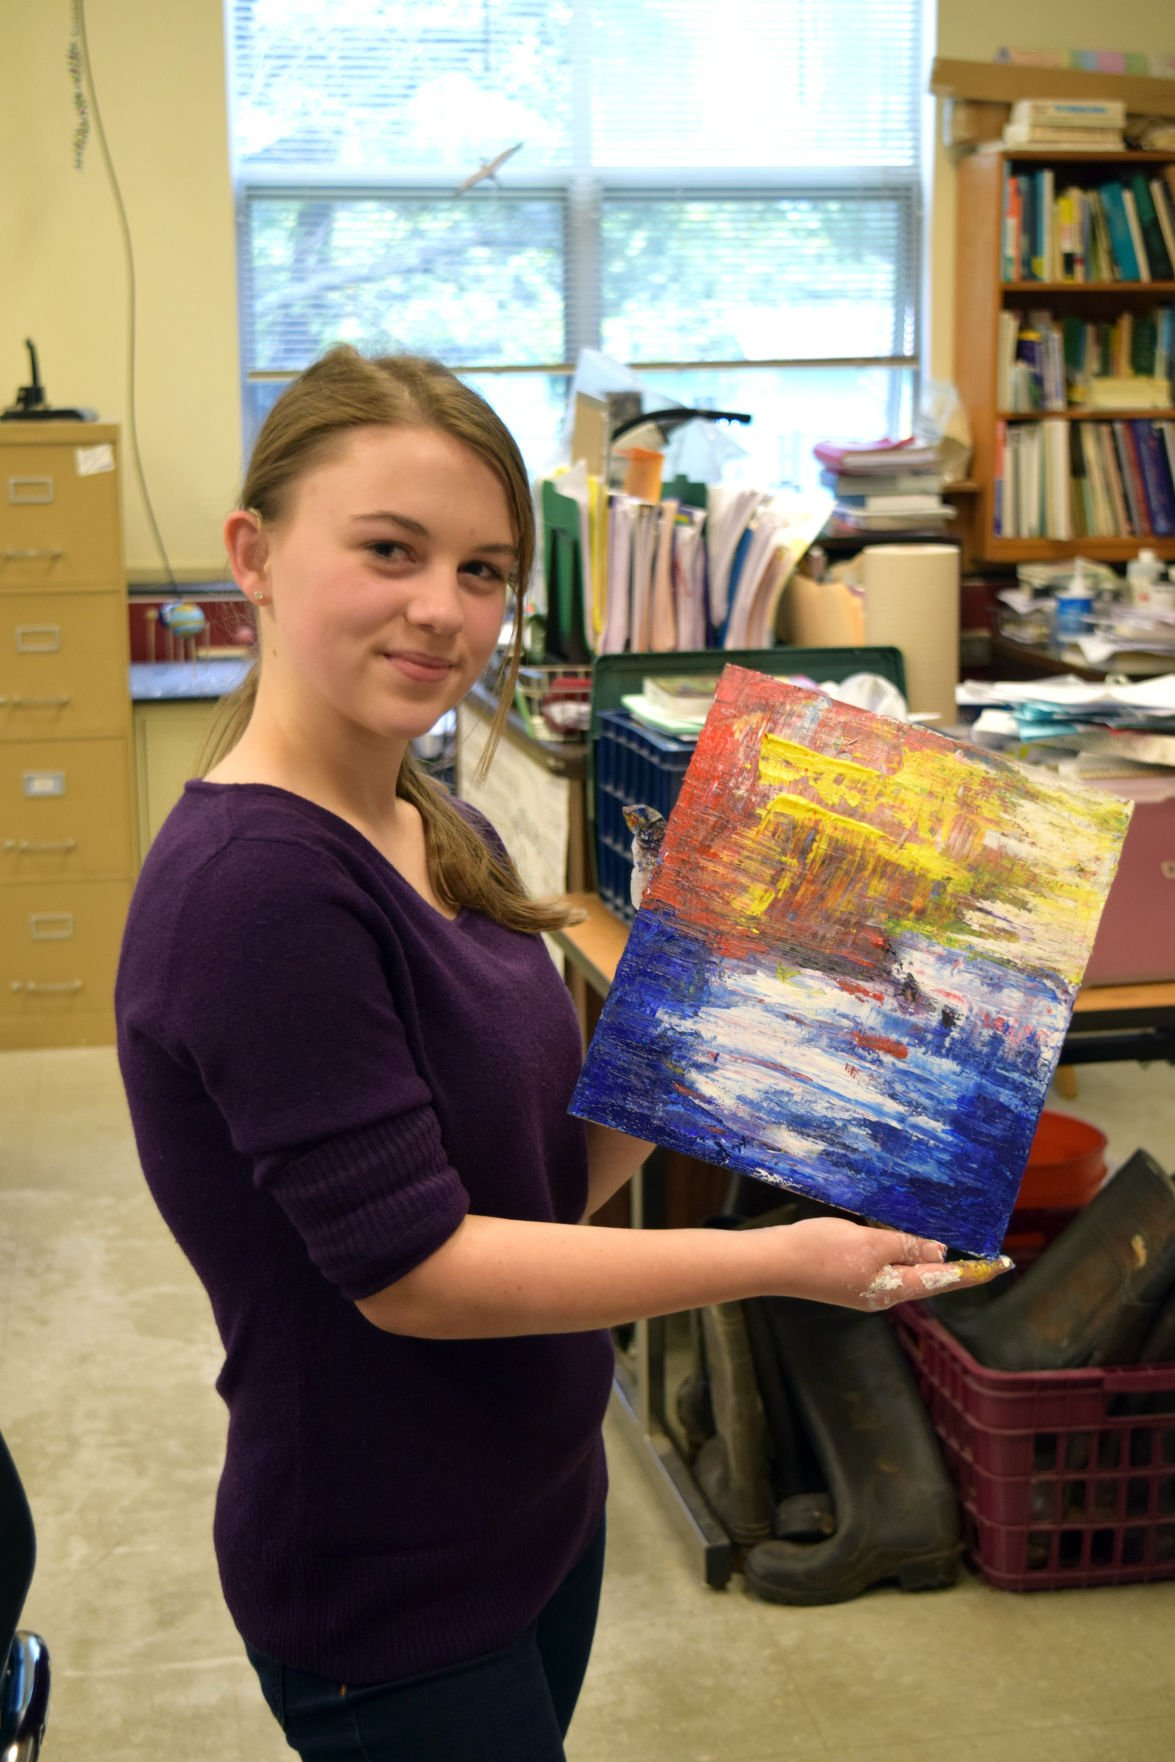 Student's efforts lead to first high school art day